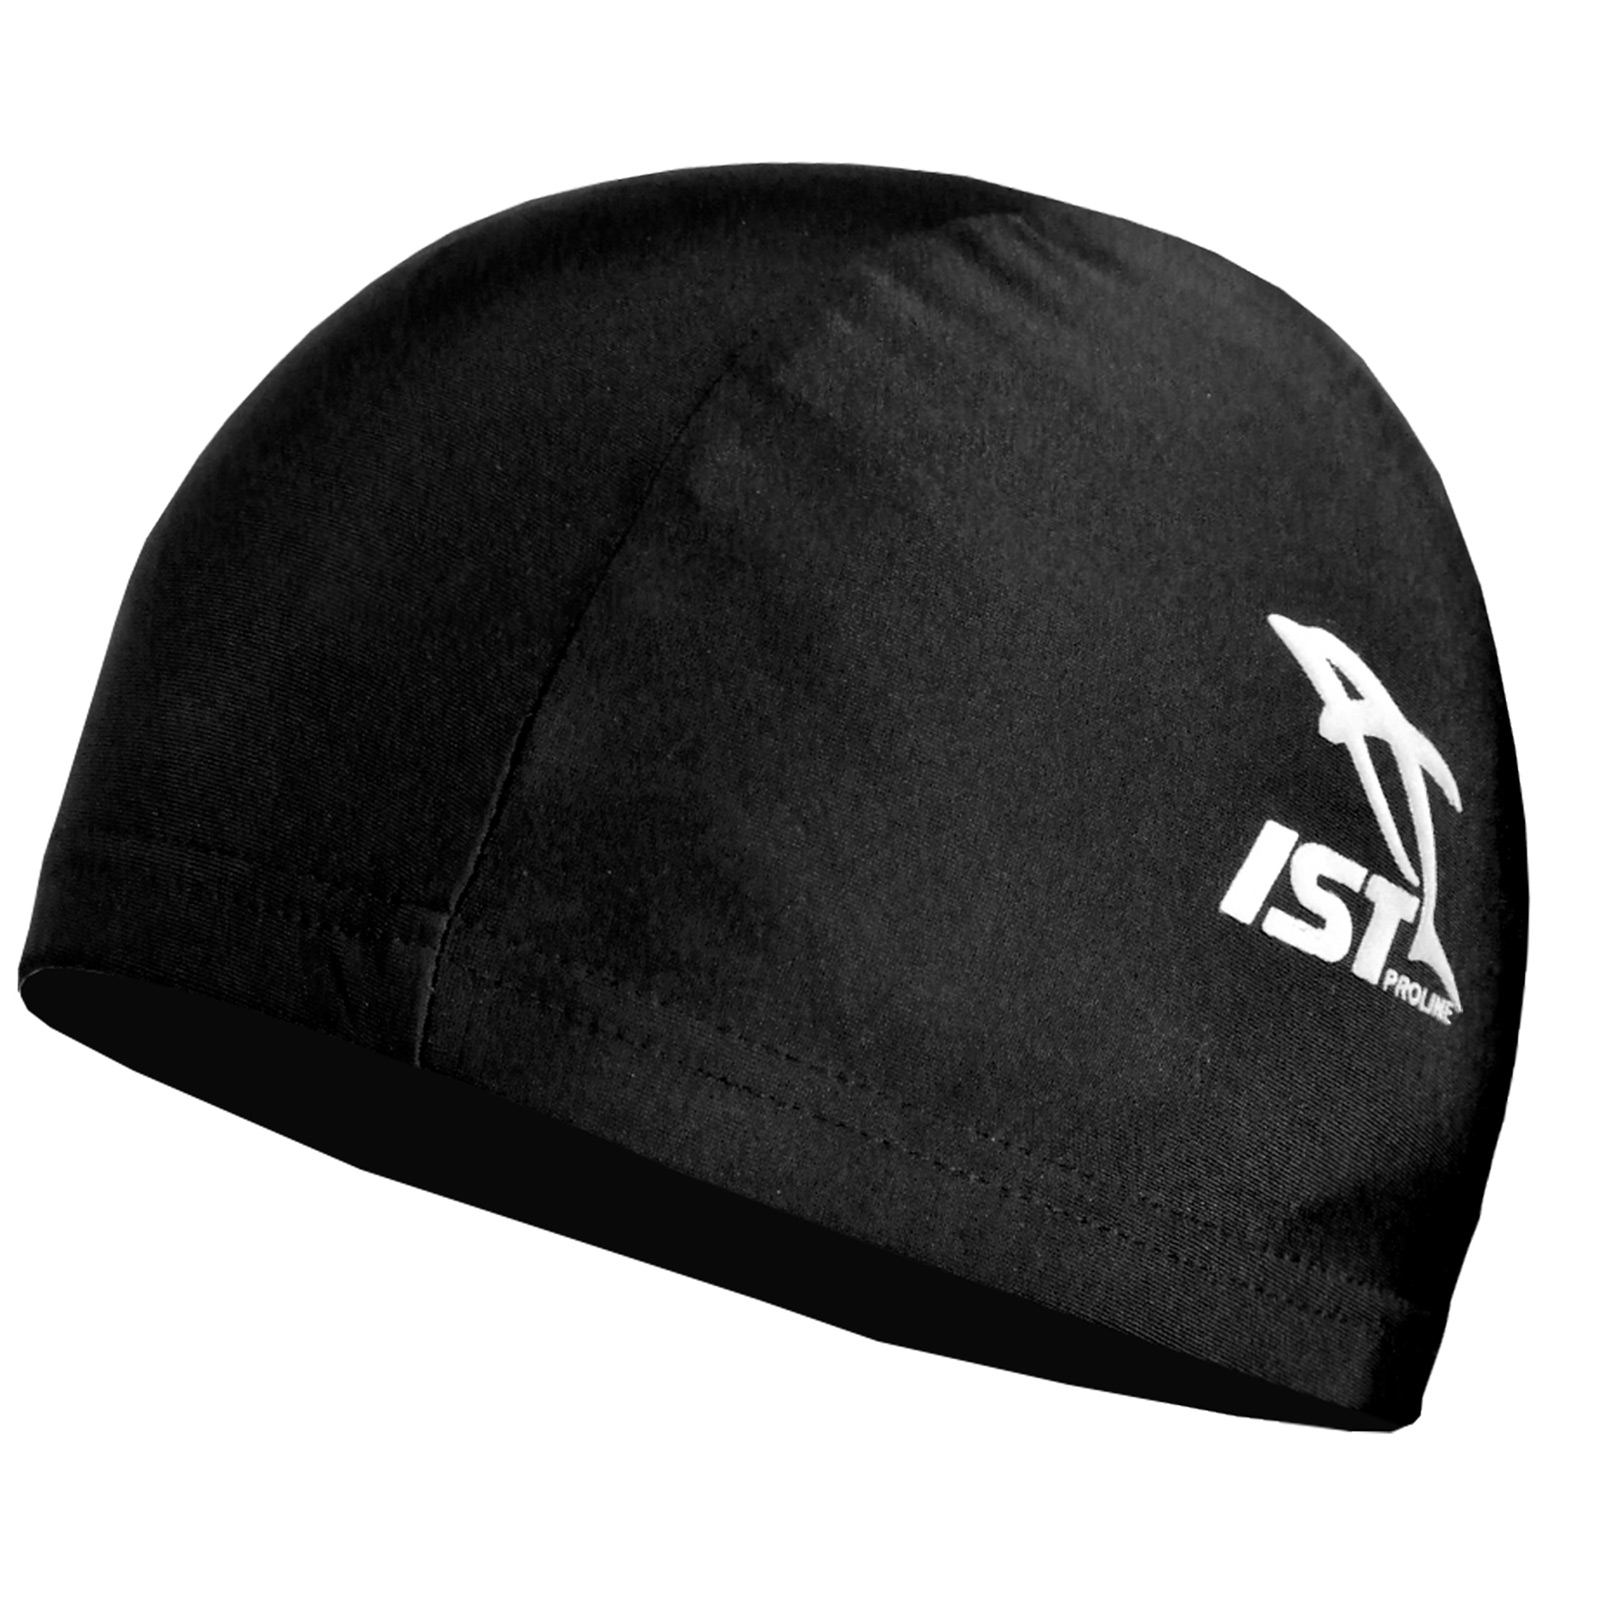 Spandex Swimming Cap